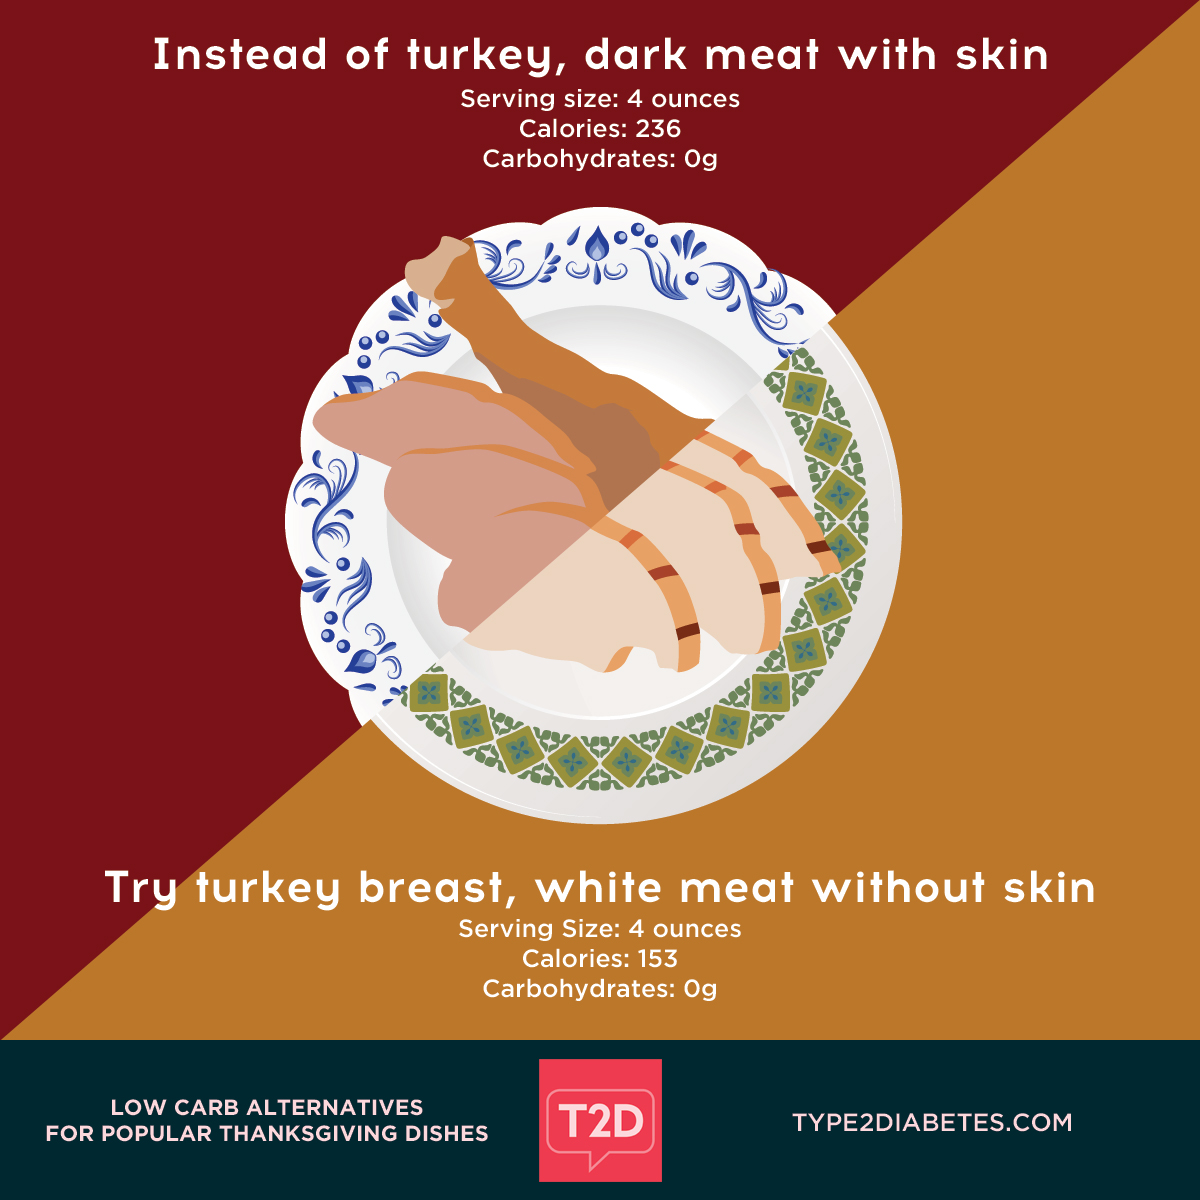 Low Carb Alternatives for Thanksgiving